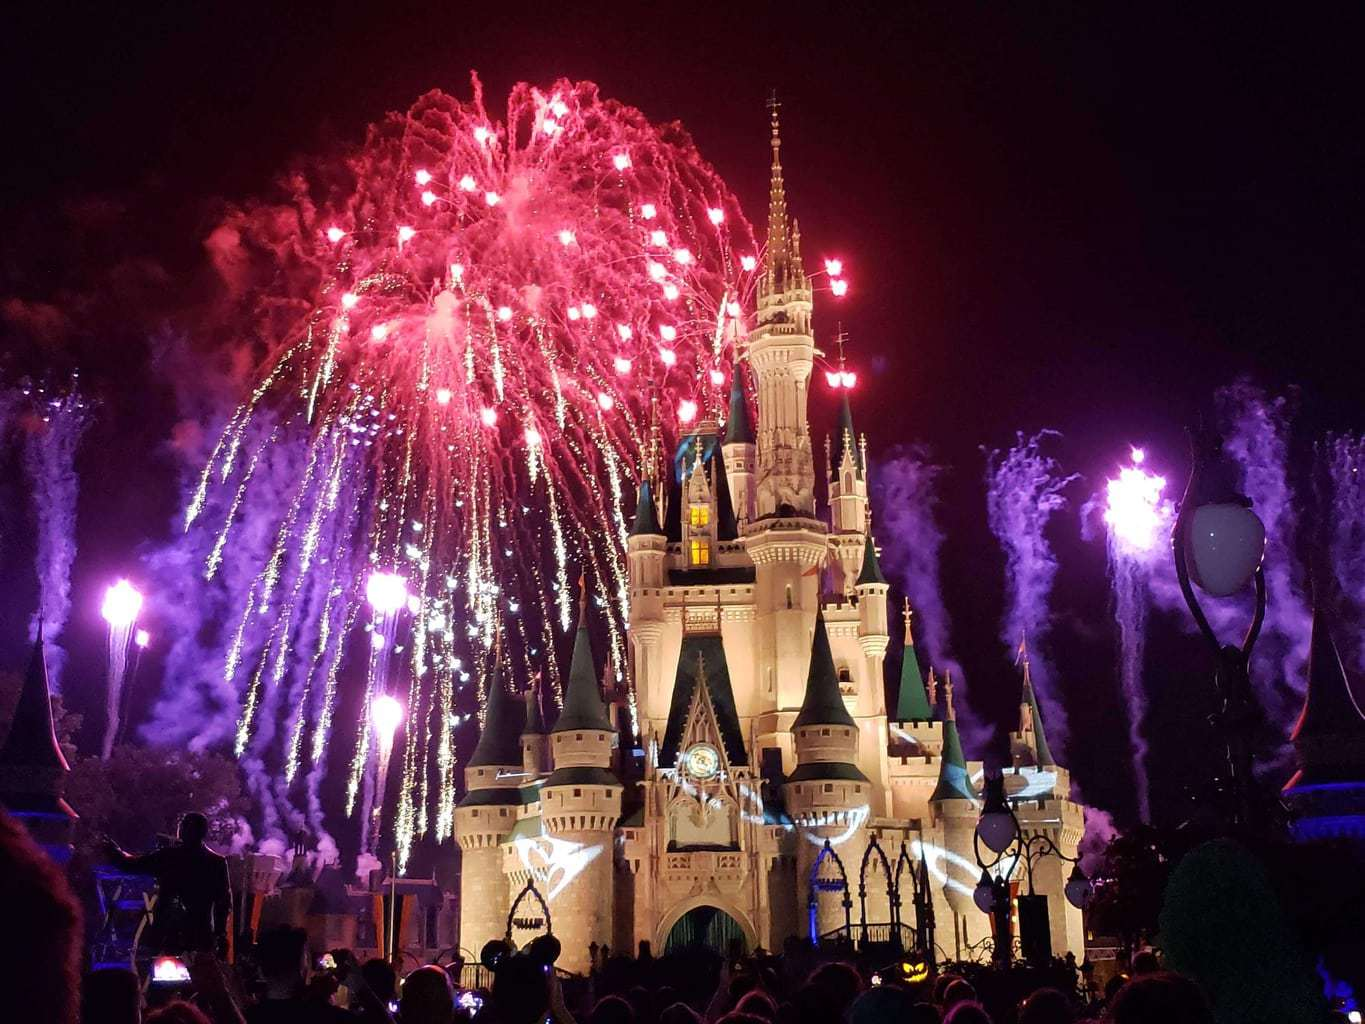 6 insider tips for mickey's not so scary halloween party - magic kingdom